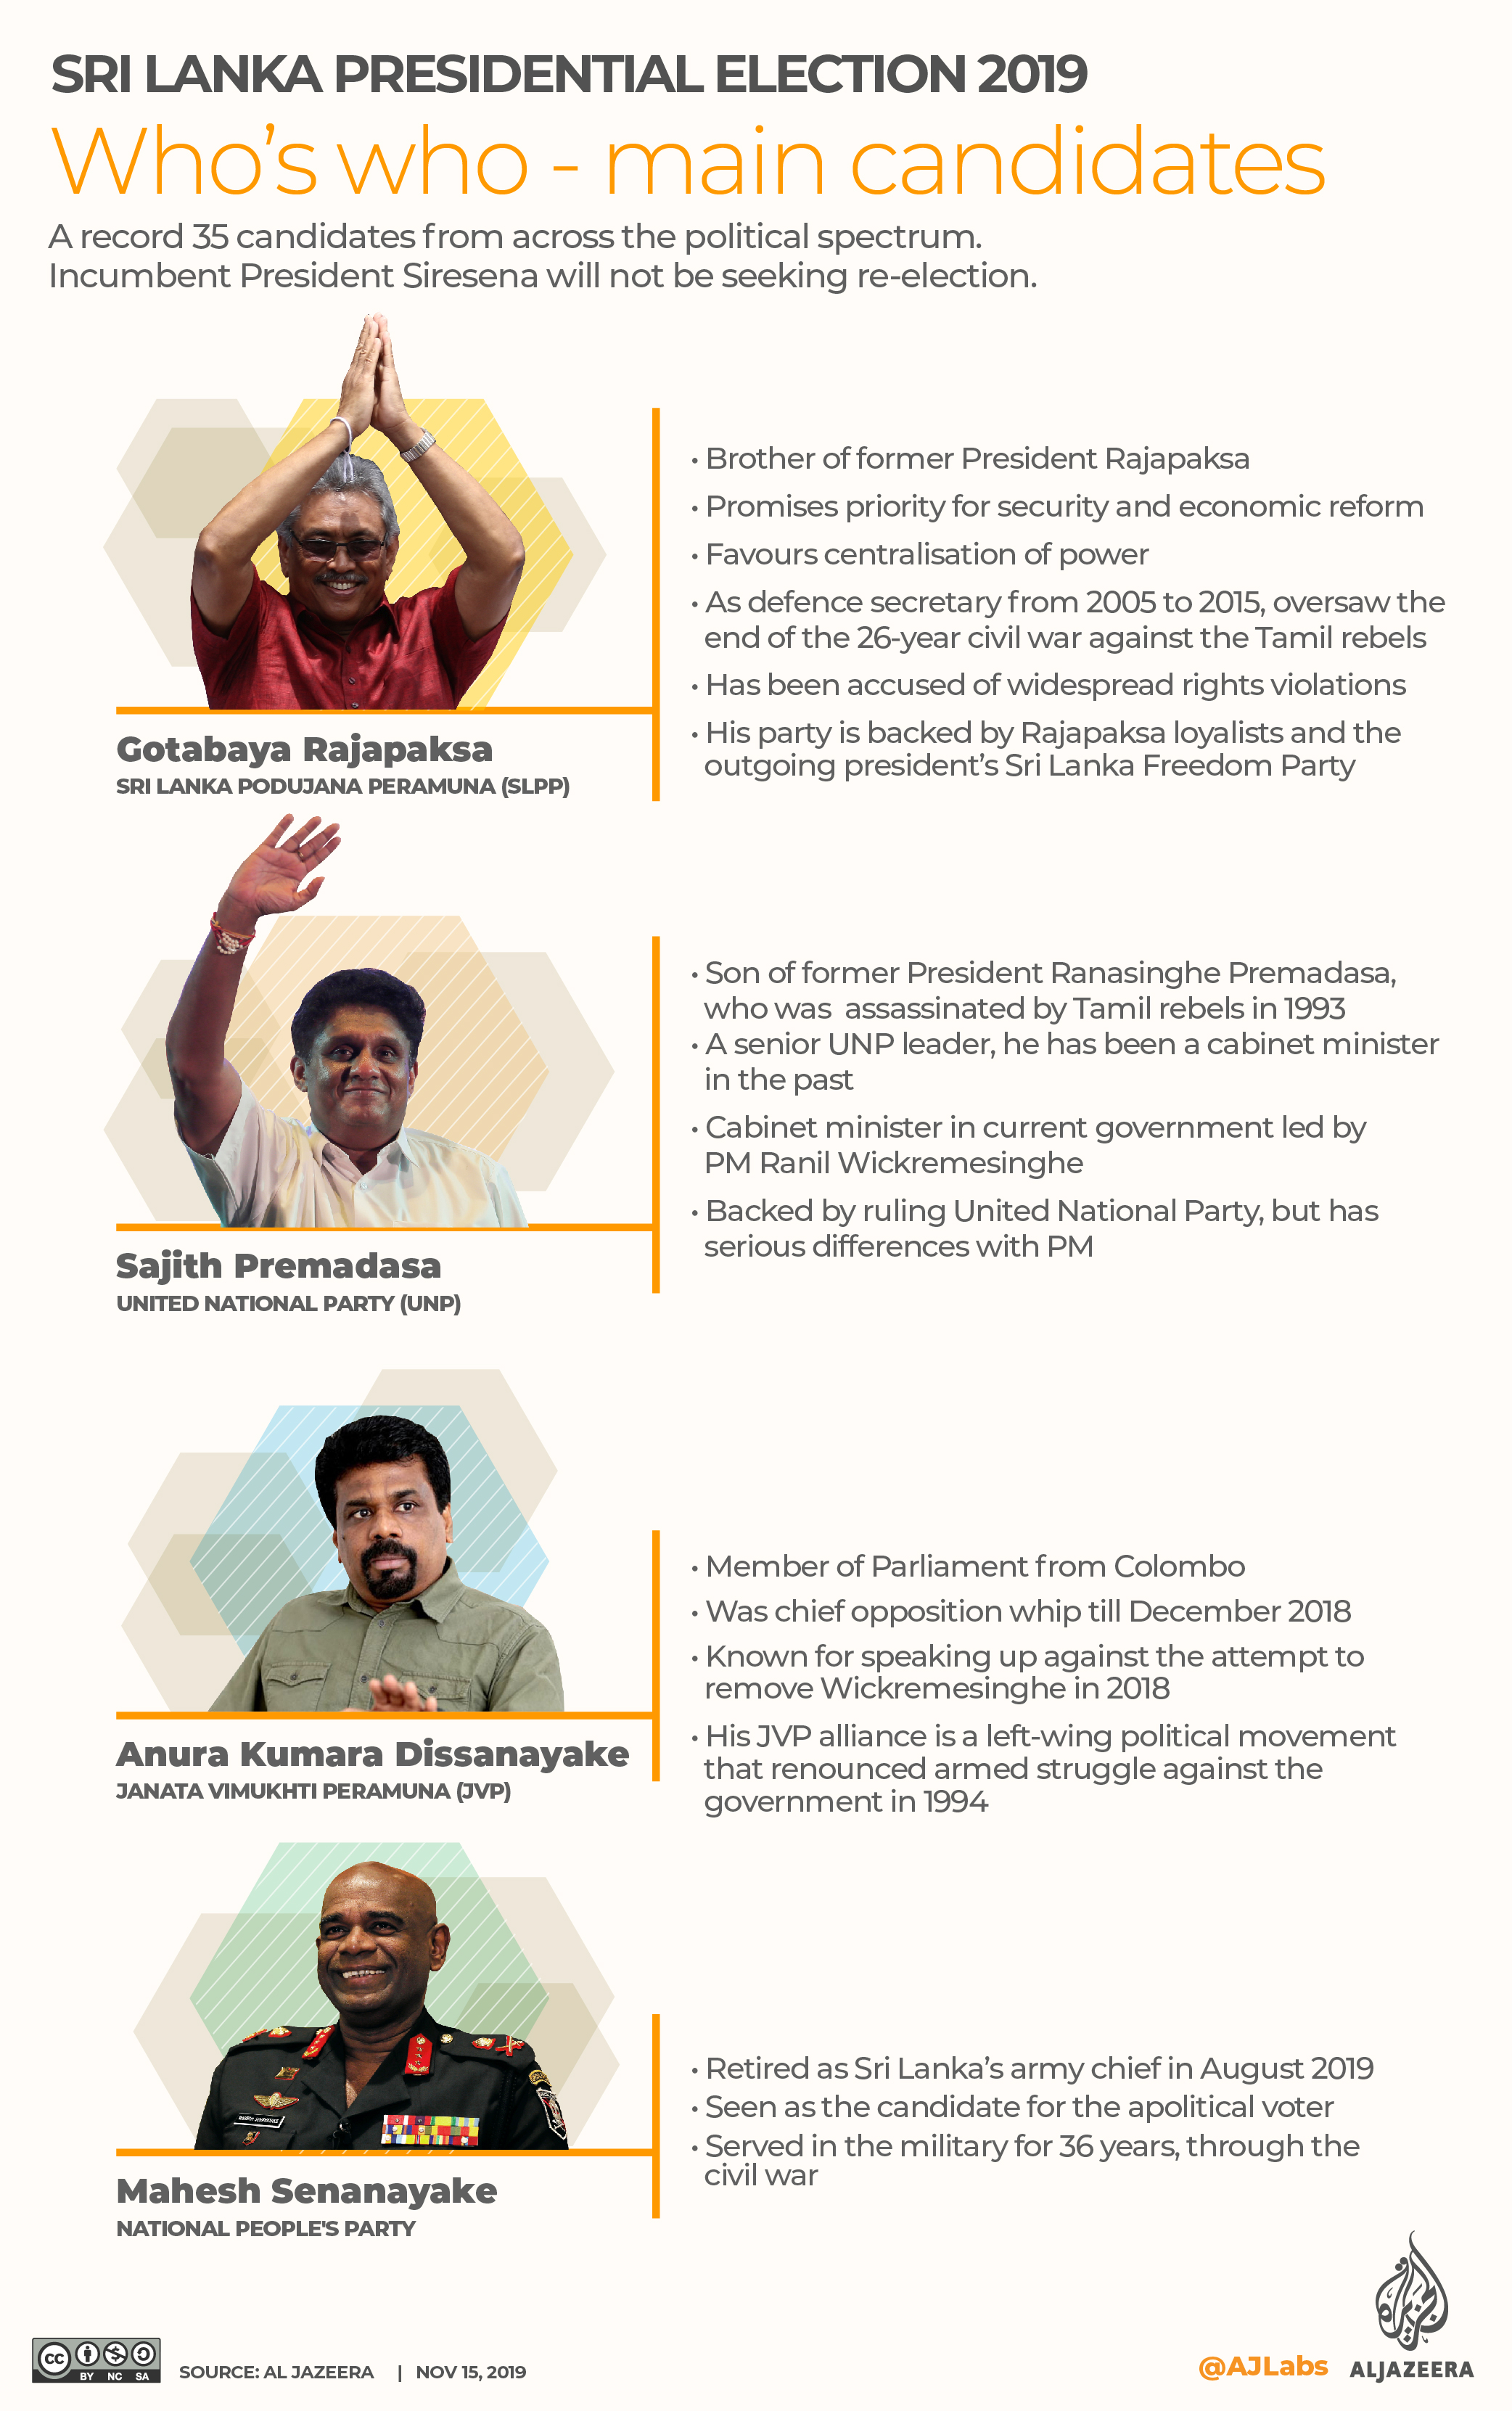 INTERACTIVE: SRI LANKA PRESIDENTIAL ELECTION 2019 - Candidates